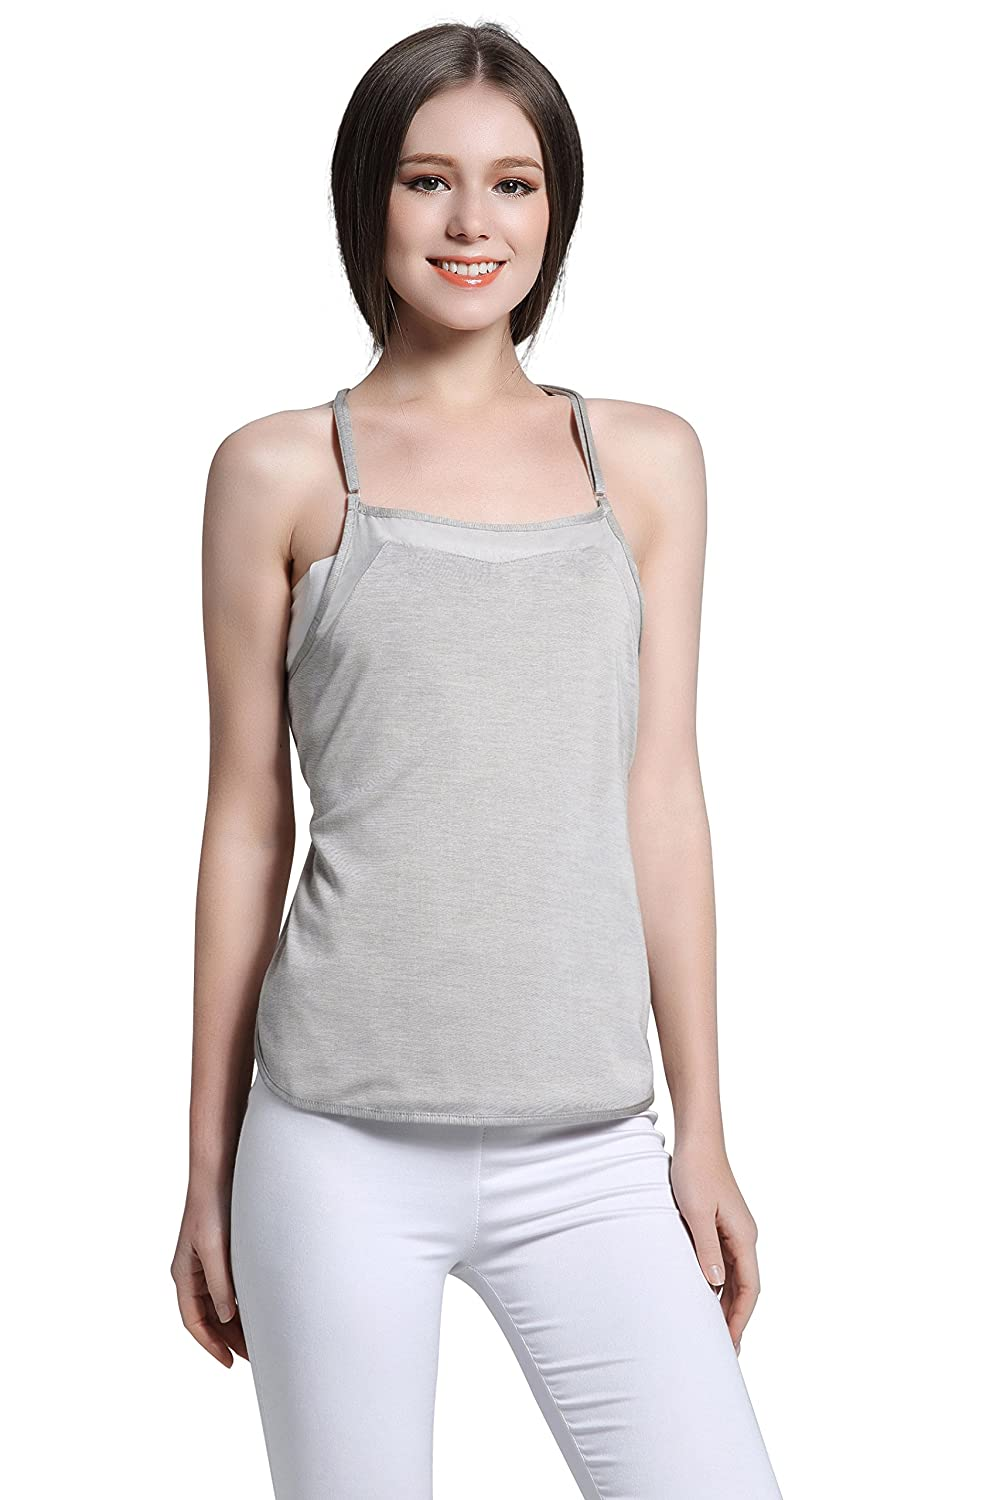 00401a8c11370 JOYNCLEON Anti-Radiation Maternity Tank-Top Belly Protective Shield  Double-Layer Silver Fiber Clothes for Pregnant Women at Amazon Women's  Clothing store: